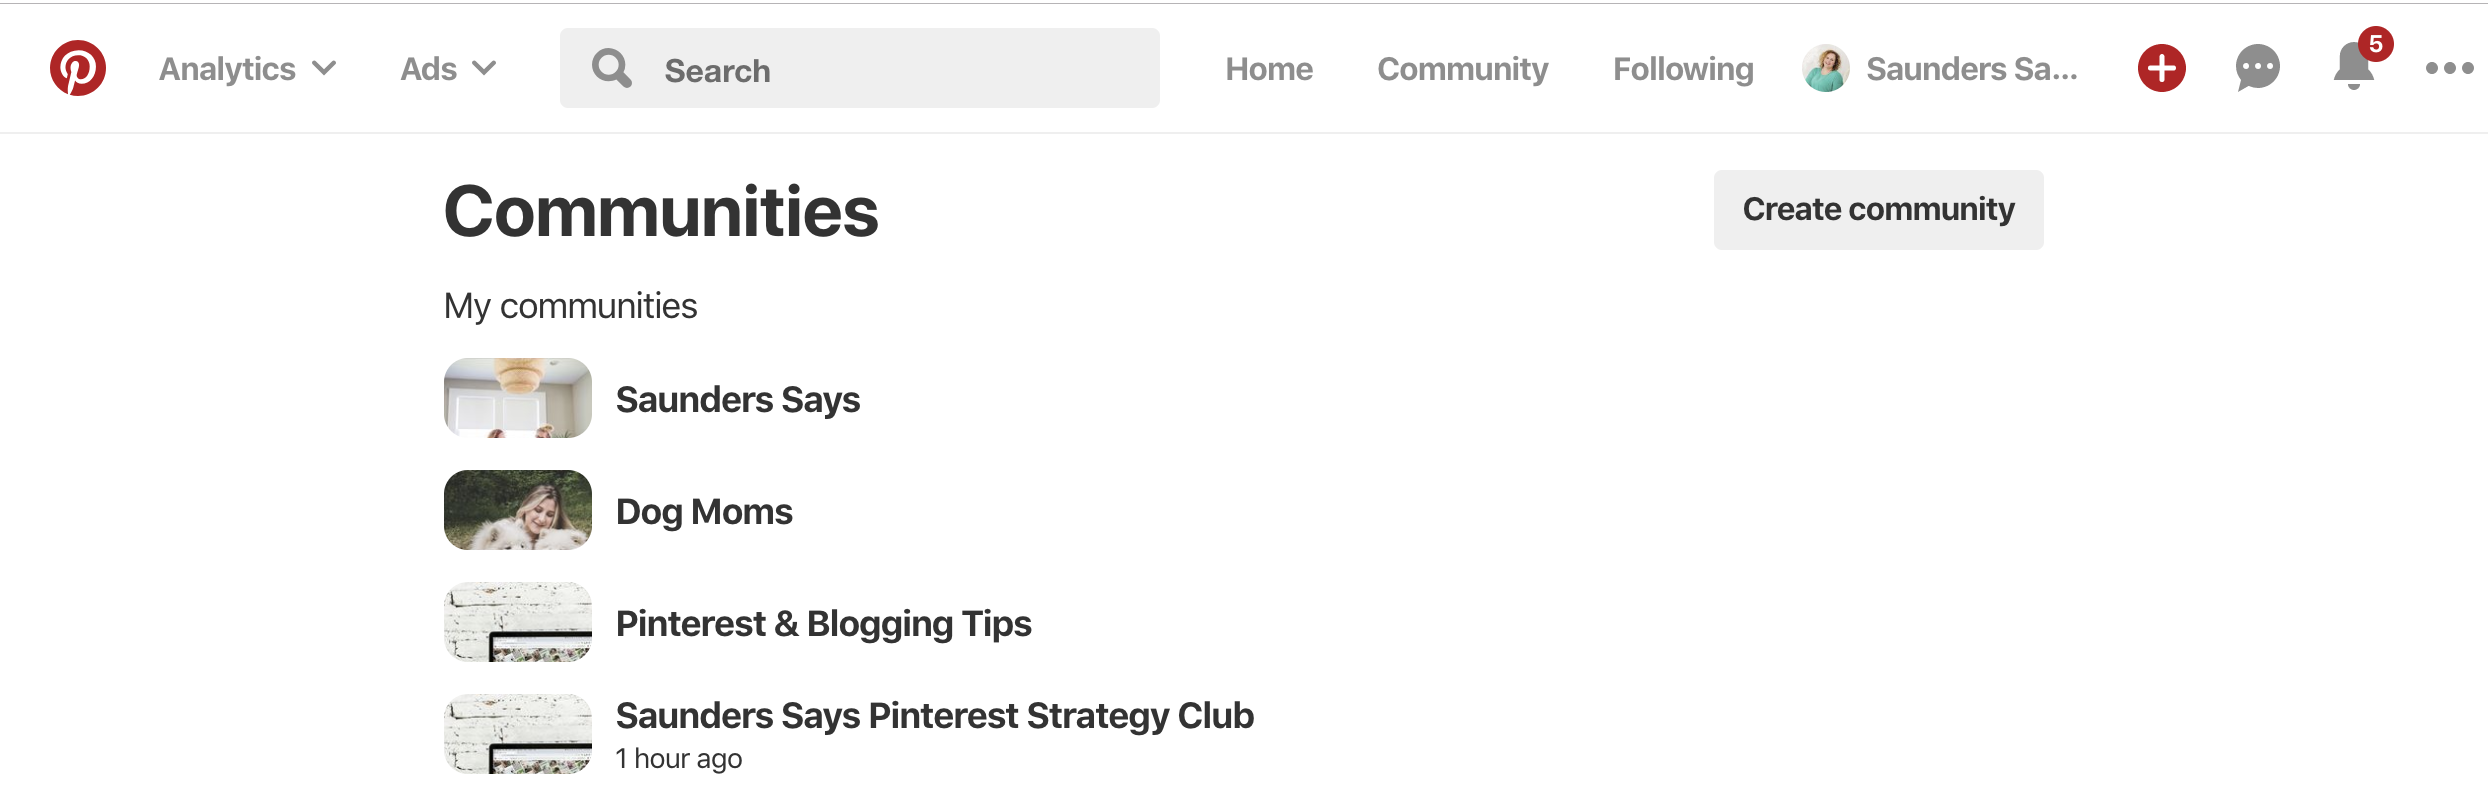 What are Pinterest Communities? How do you get Pinterest Communities? Get the details now! #saunderssays #pinterestcommunities #pinterest #pinterestmarketing #pinteresttips